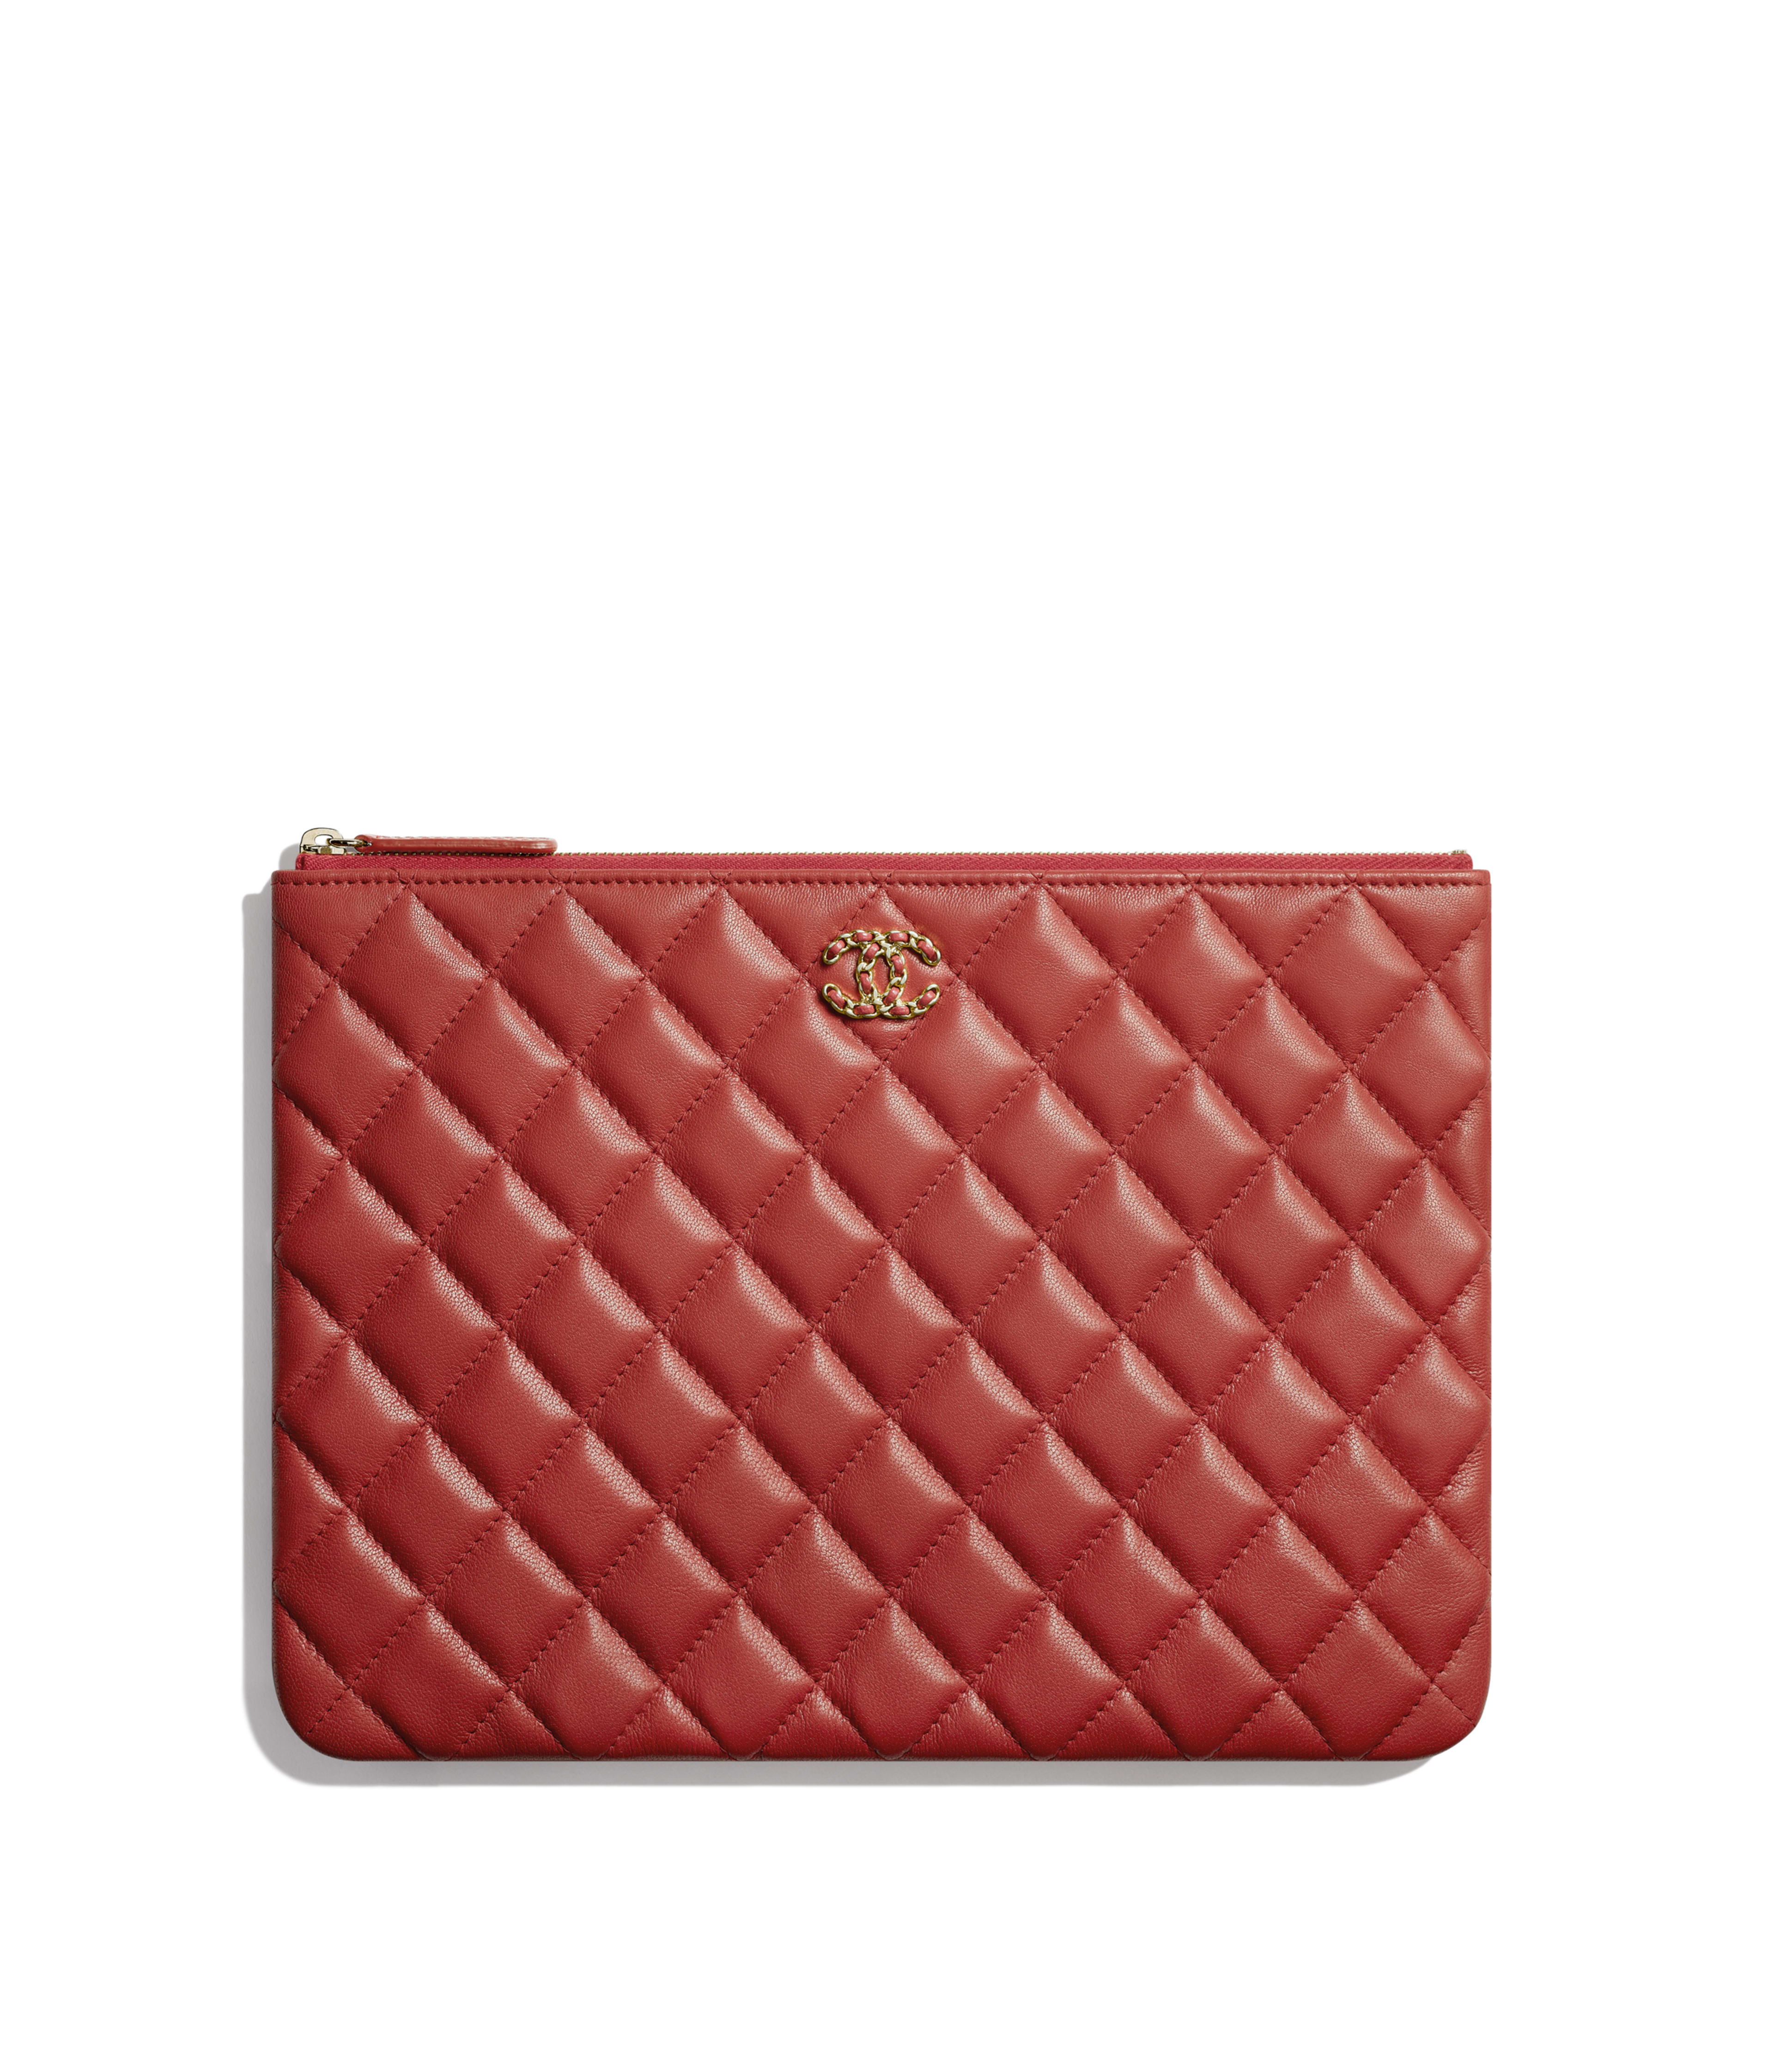 Small leather goods - Fashion | CHANEL